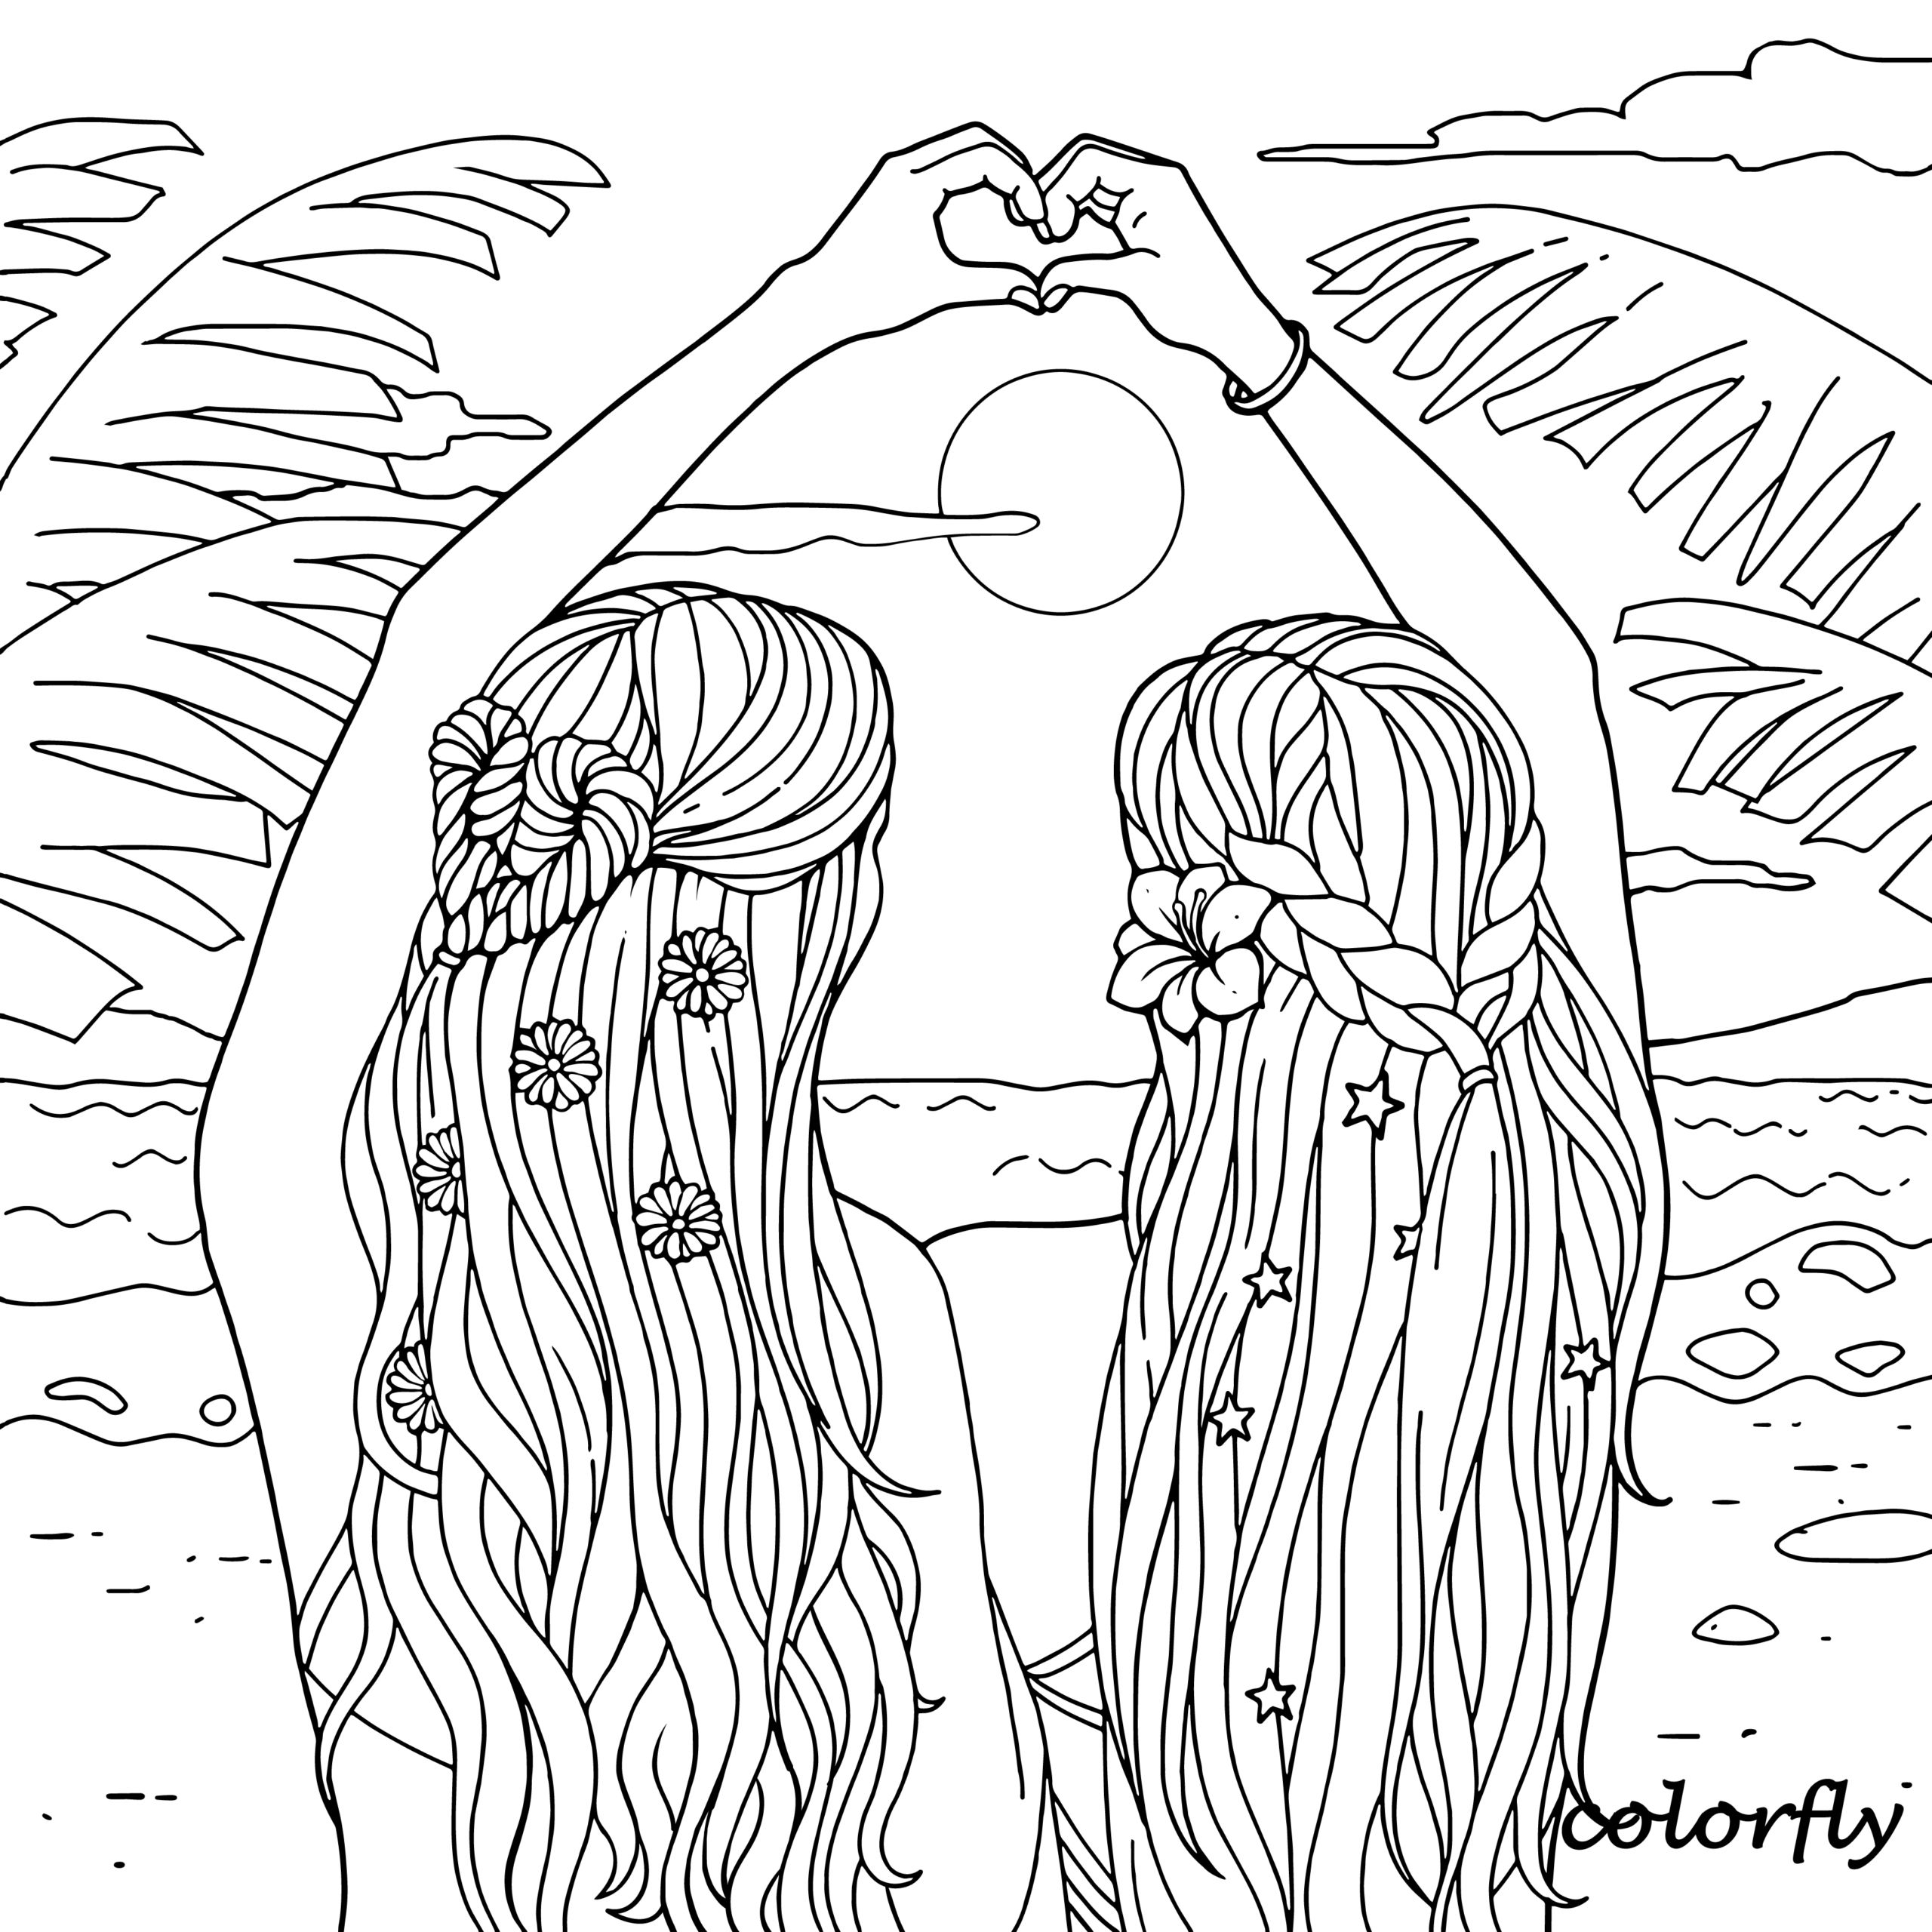 Best Friend Coloring Pages For Kids In 2020 Cute Coloring Pages Summer Coloring Pages Fairy Coloring Pages